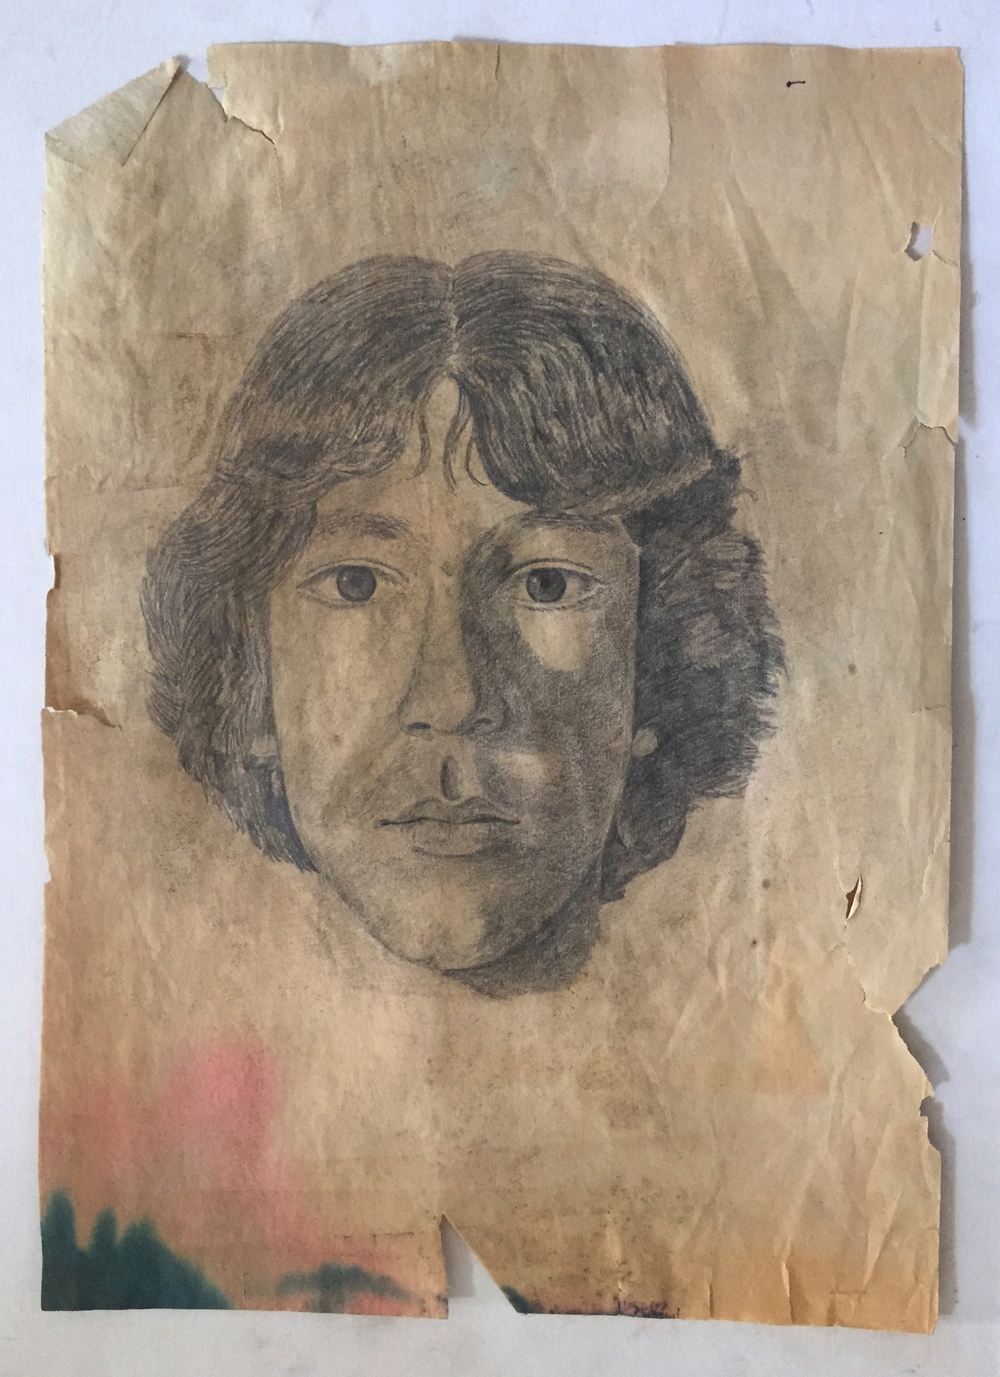 High School Art Class Self Portrait   Pencil on paper.   © Jud Burgess  1977